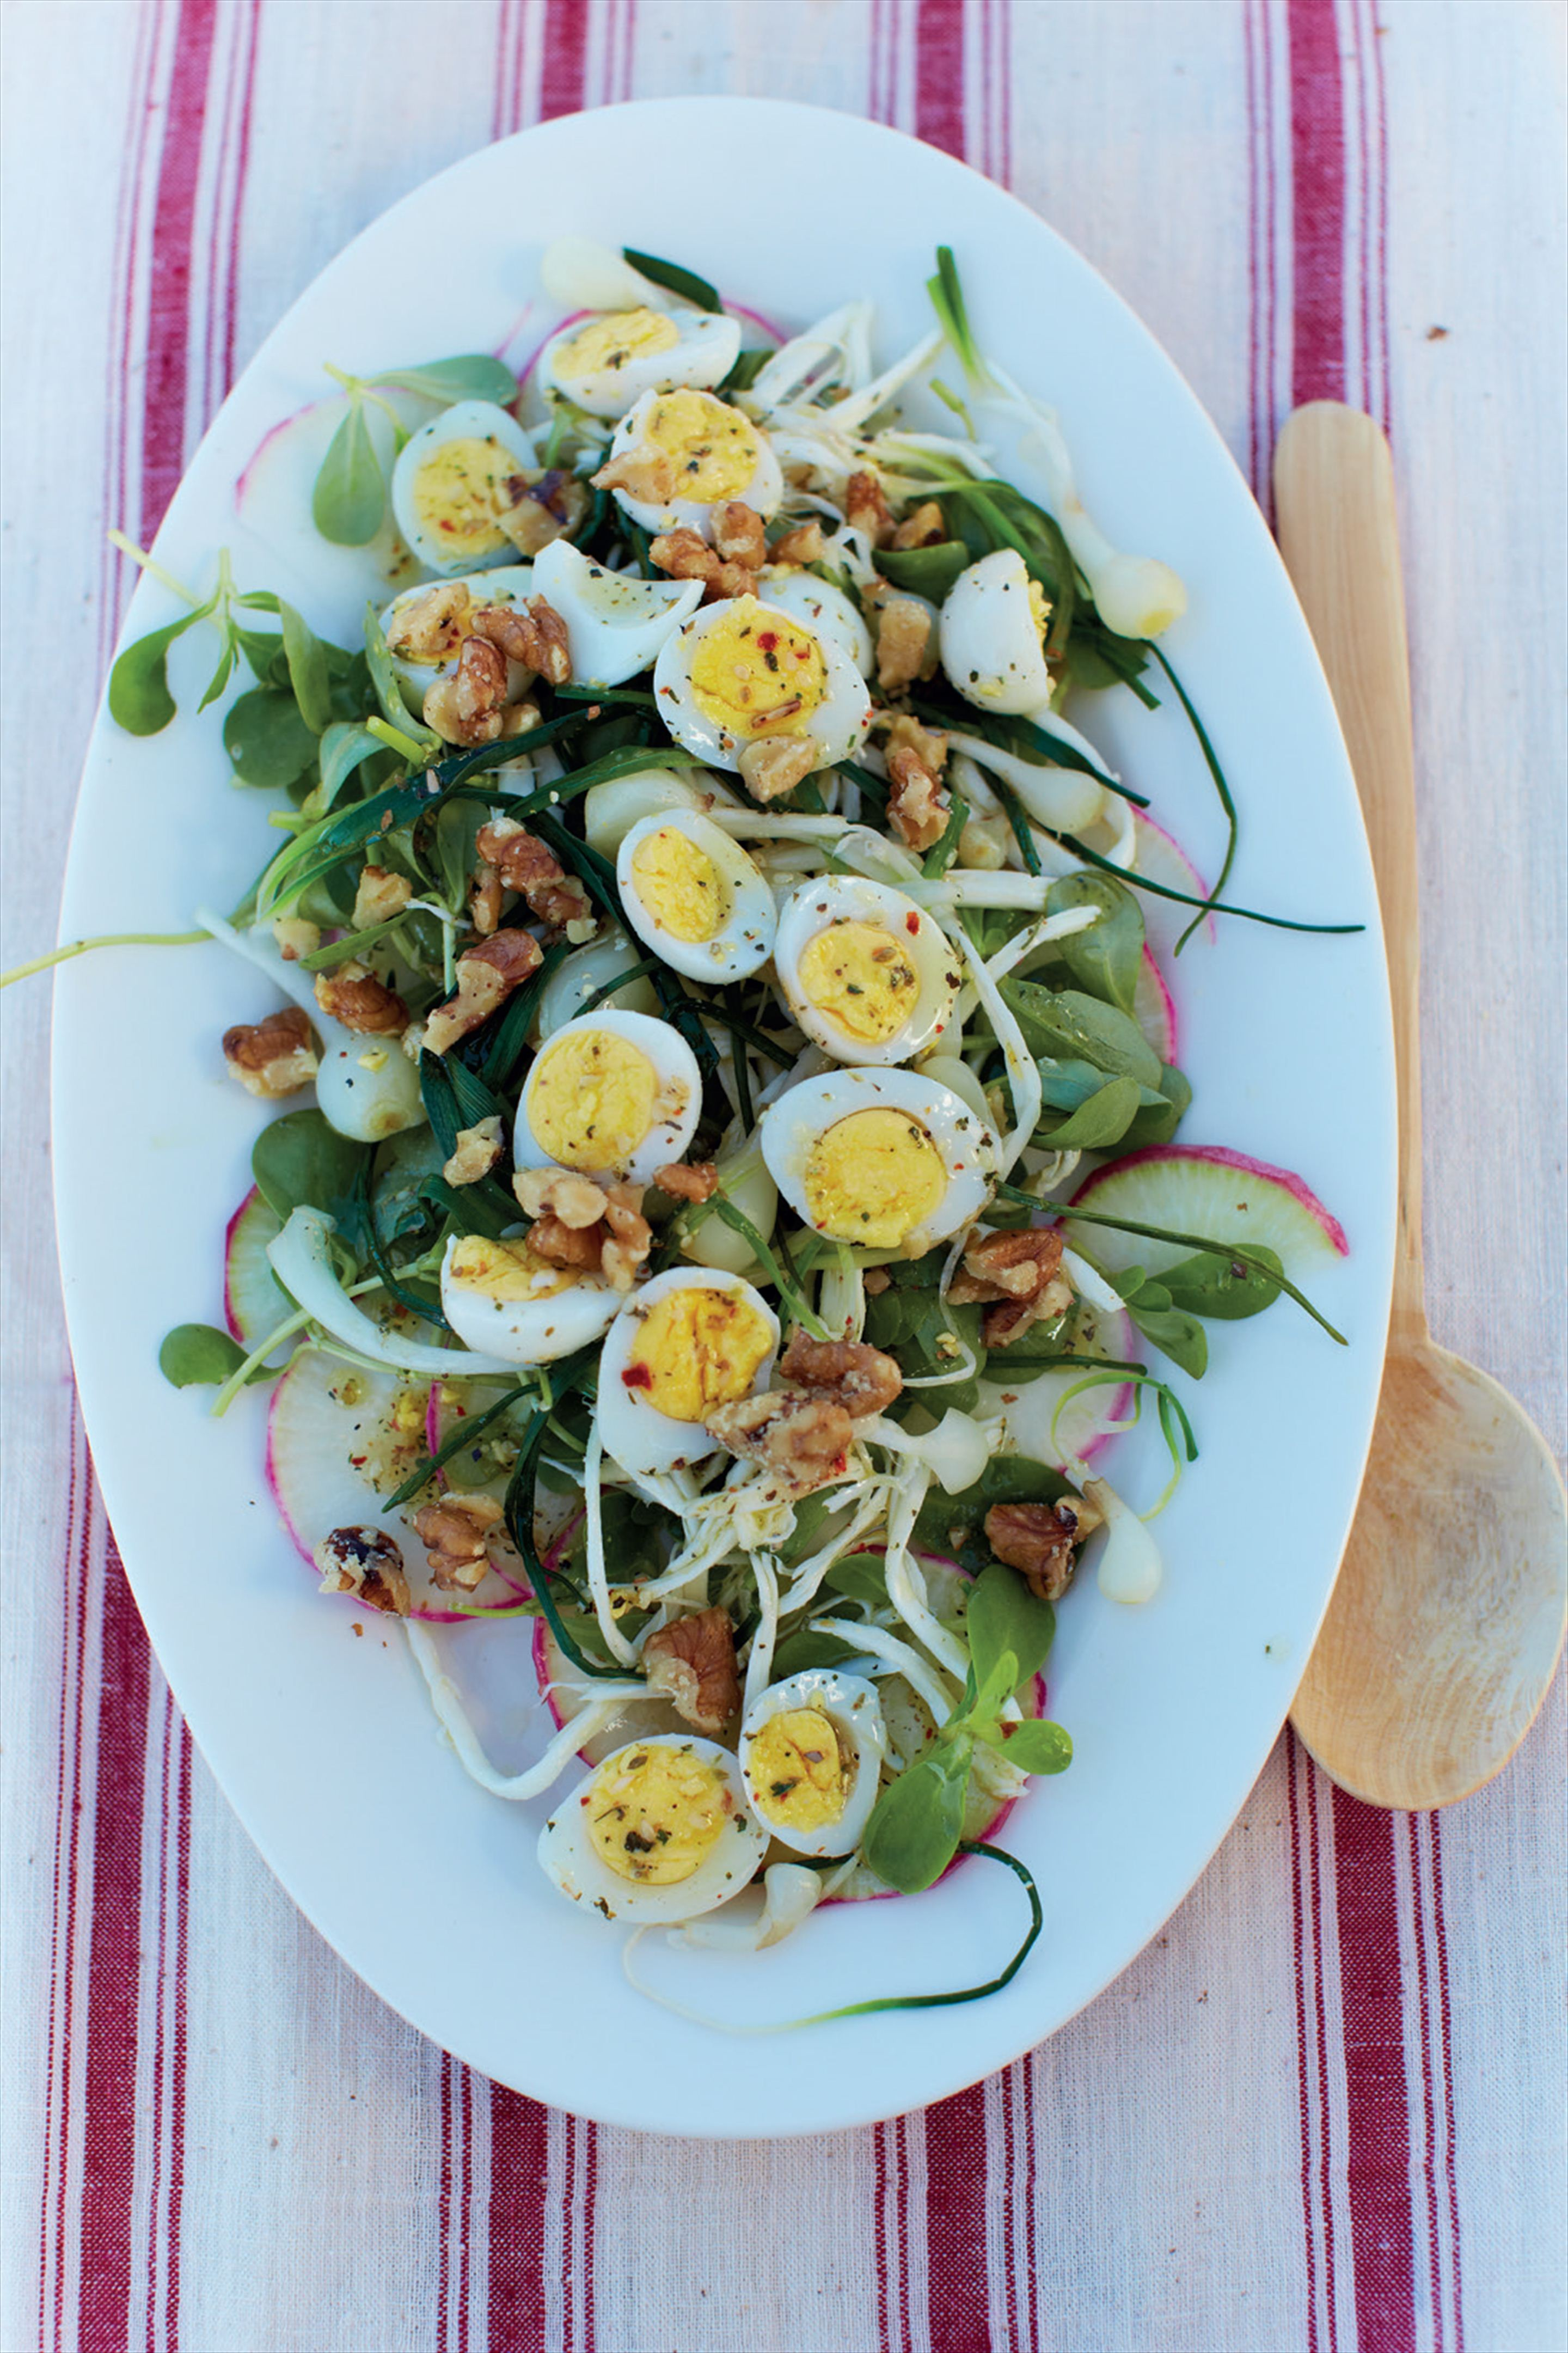 Black sea salad